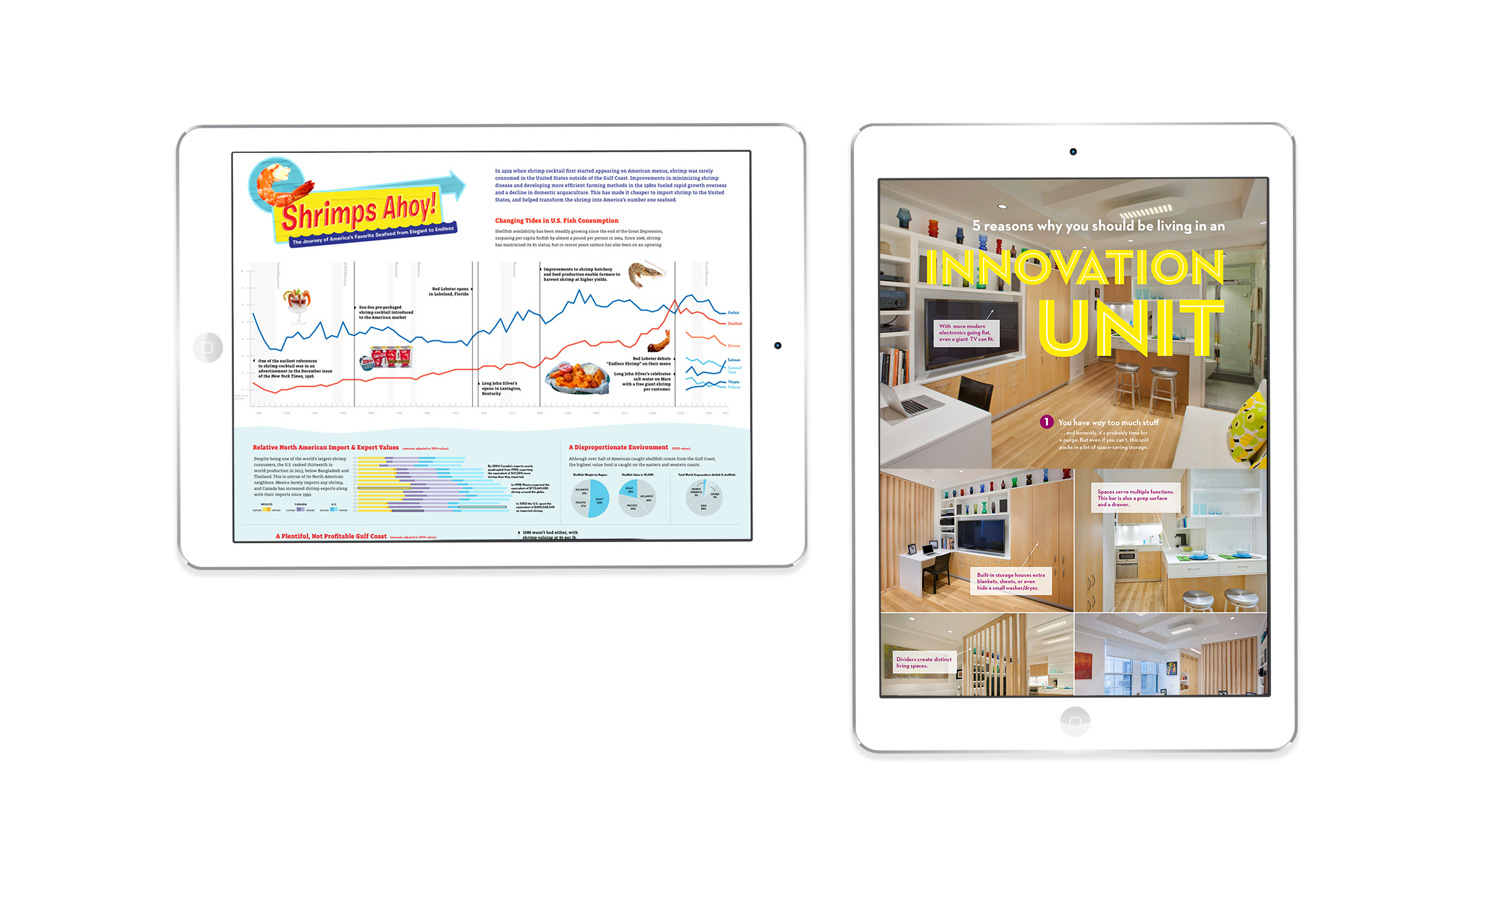 Hero image of two infographic screenshots on a tablet